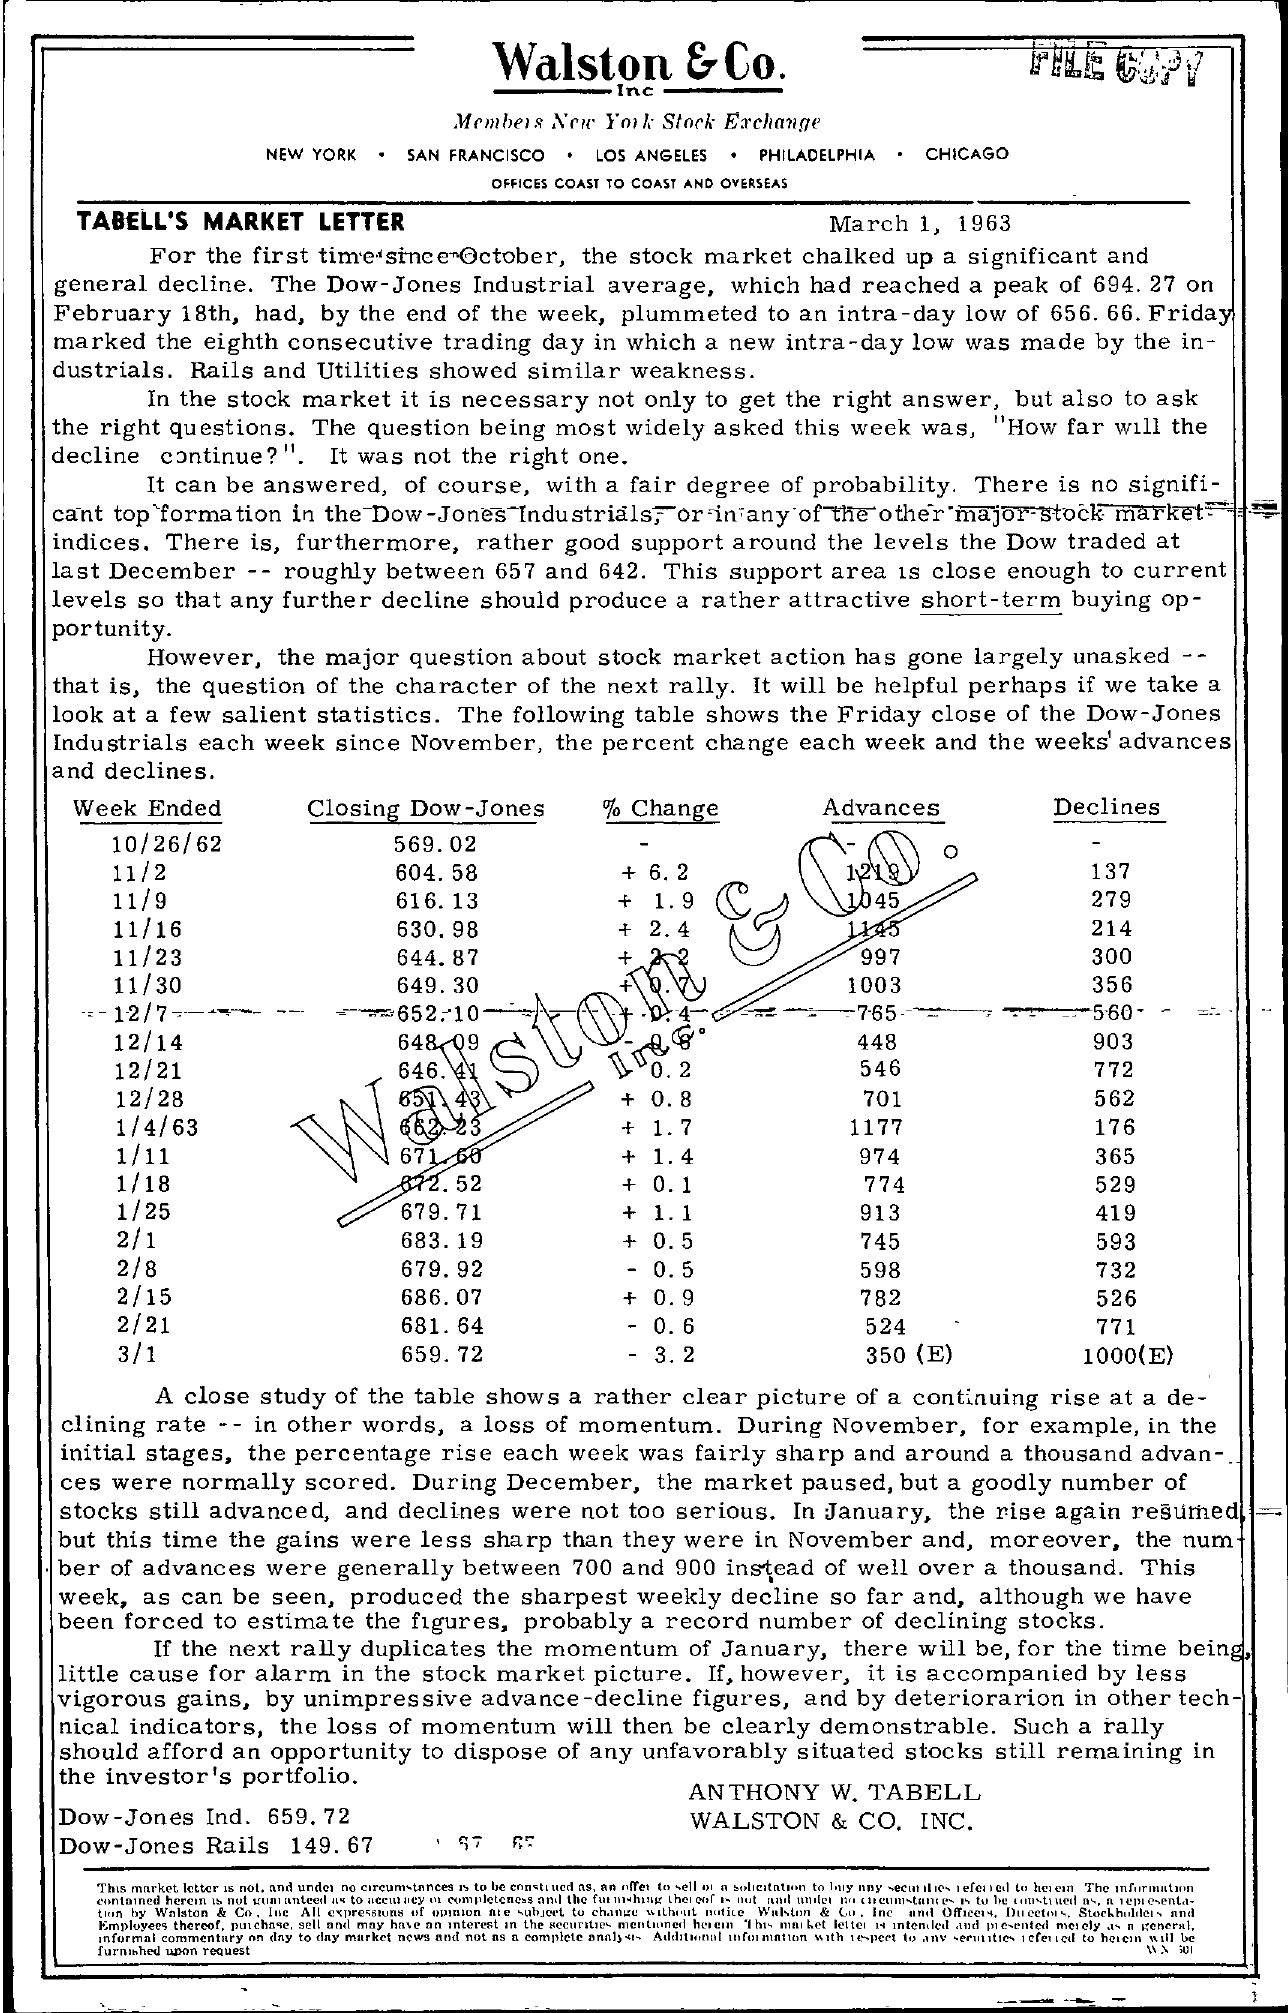 Tabell's Market Letter - March 01, 1963